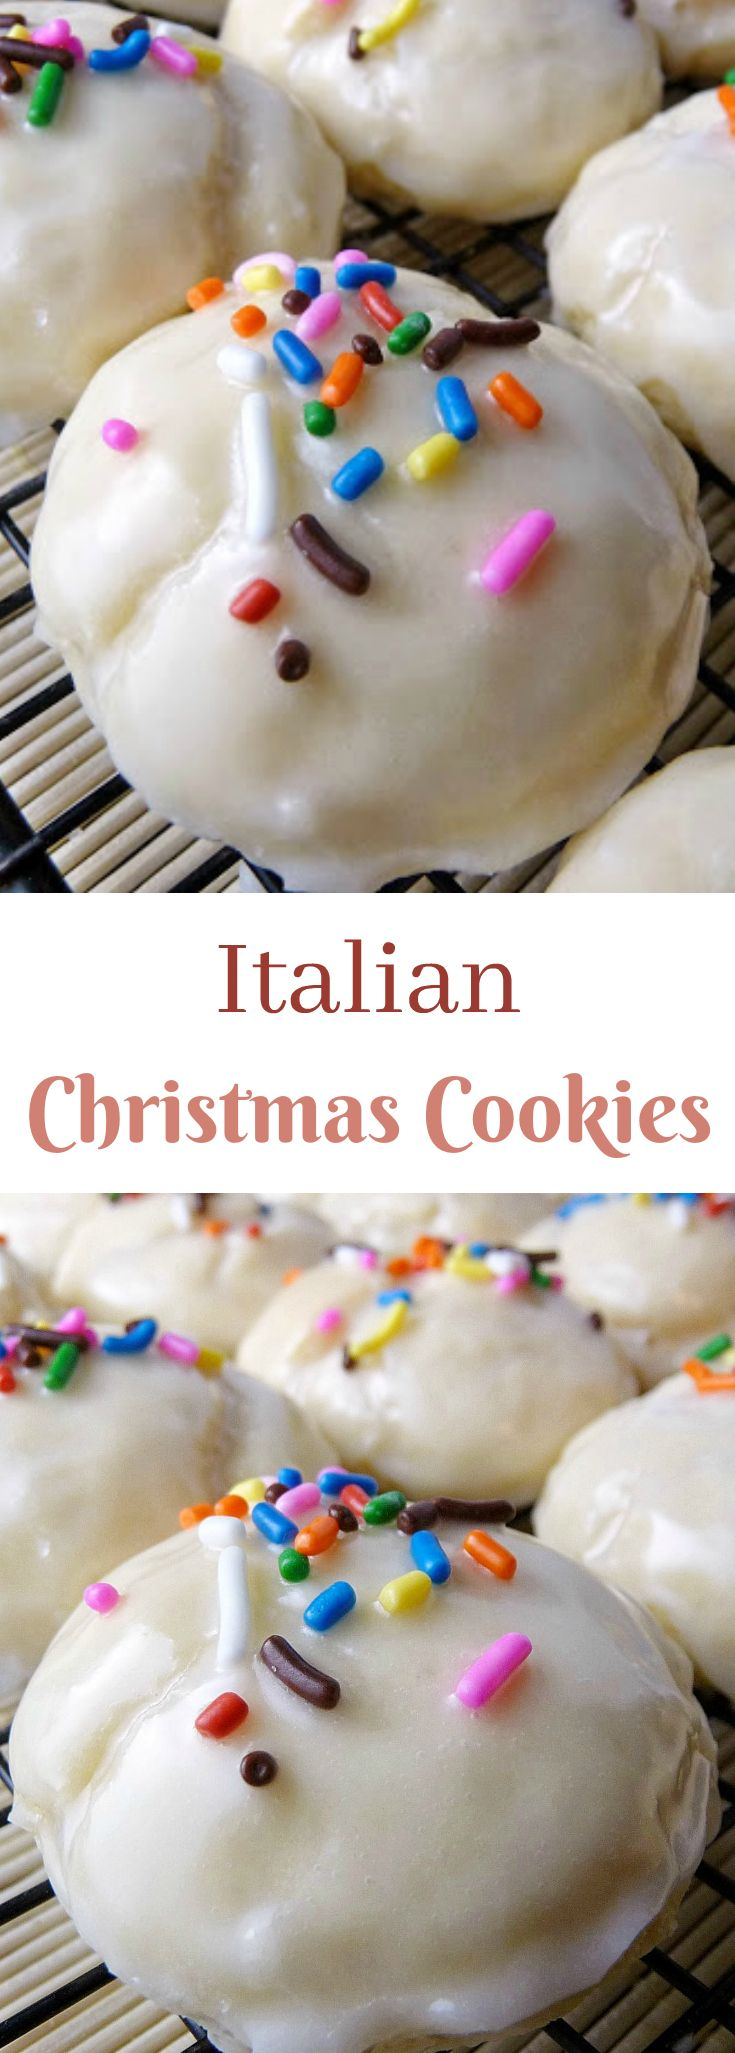 Christmas Colored Cookies With Italian Soft Cookie Balls Drenched In An Almond